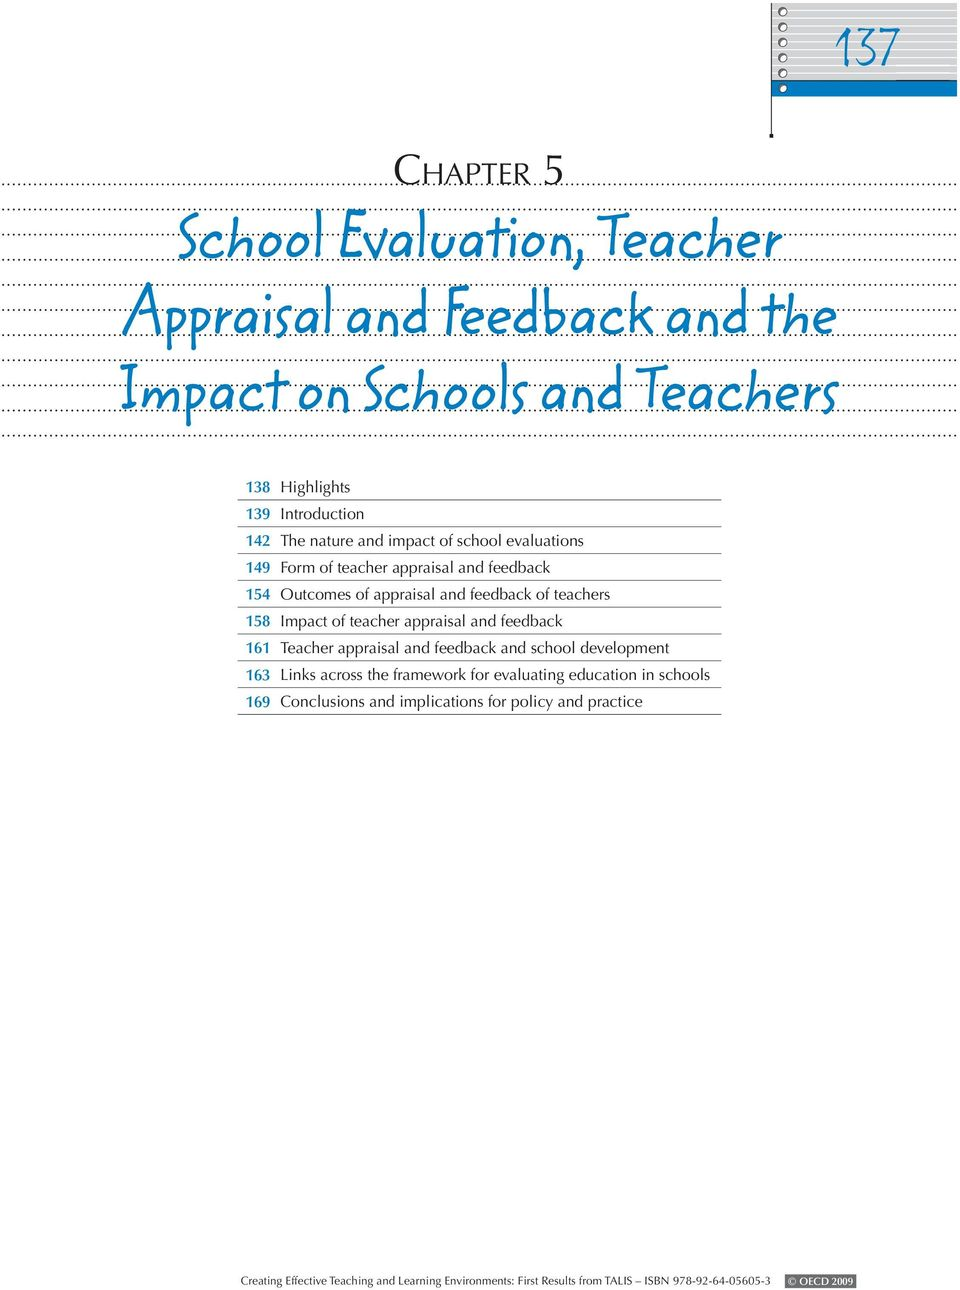 appraisal and feedback of teachers 158 Impact of teacher appraisal and feedback 161 Teacher appraisal and feedback and school